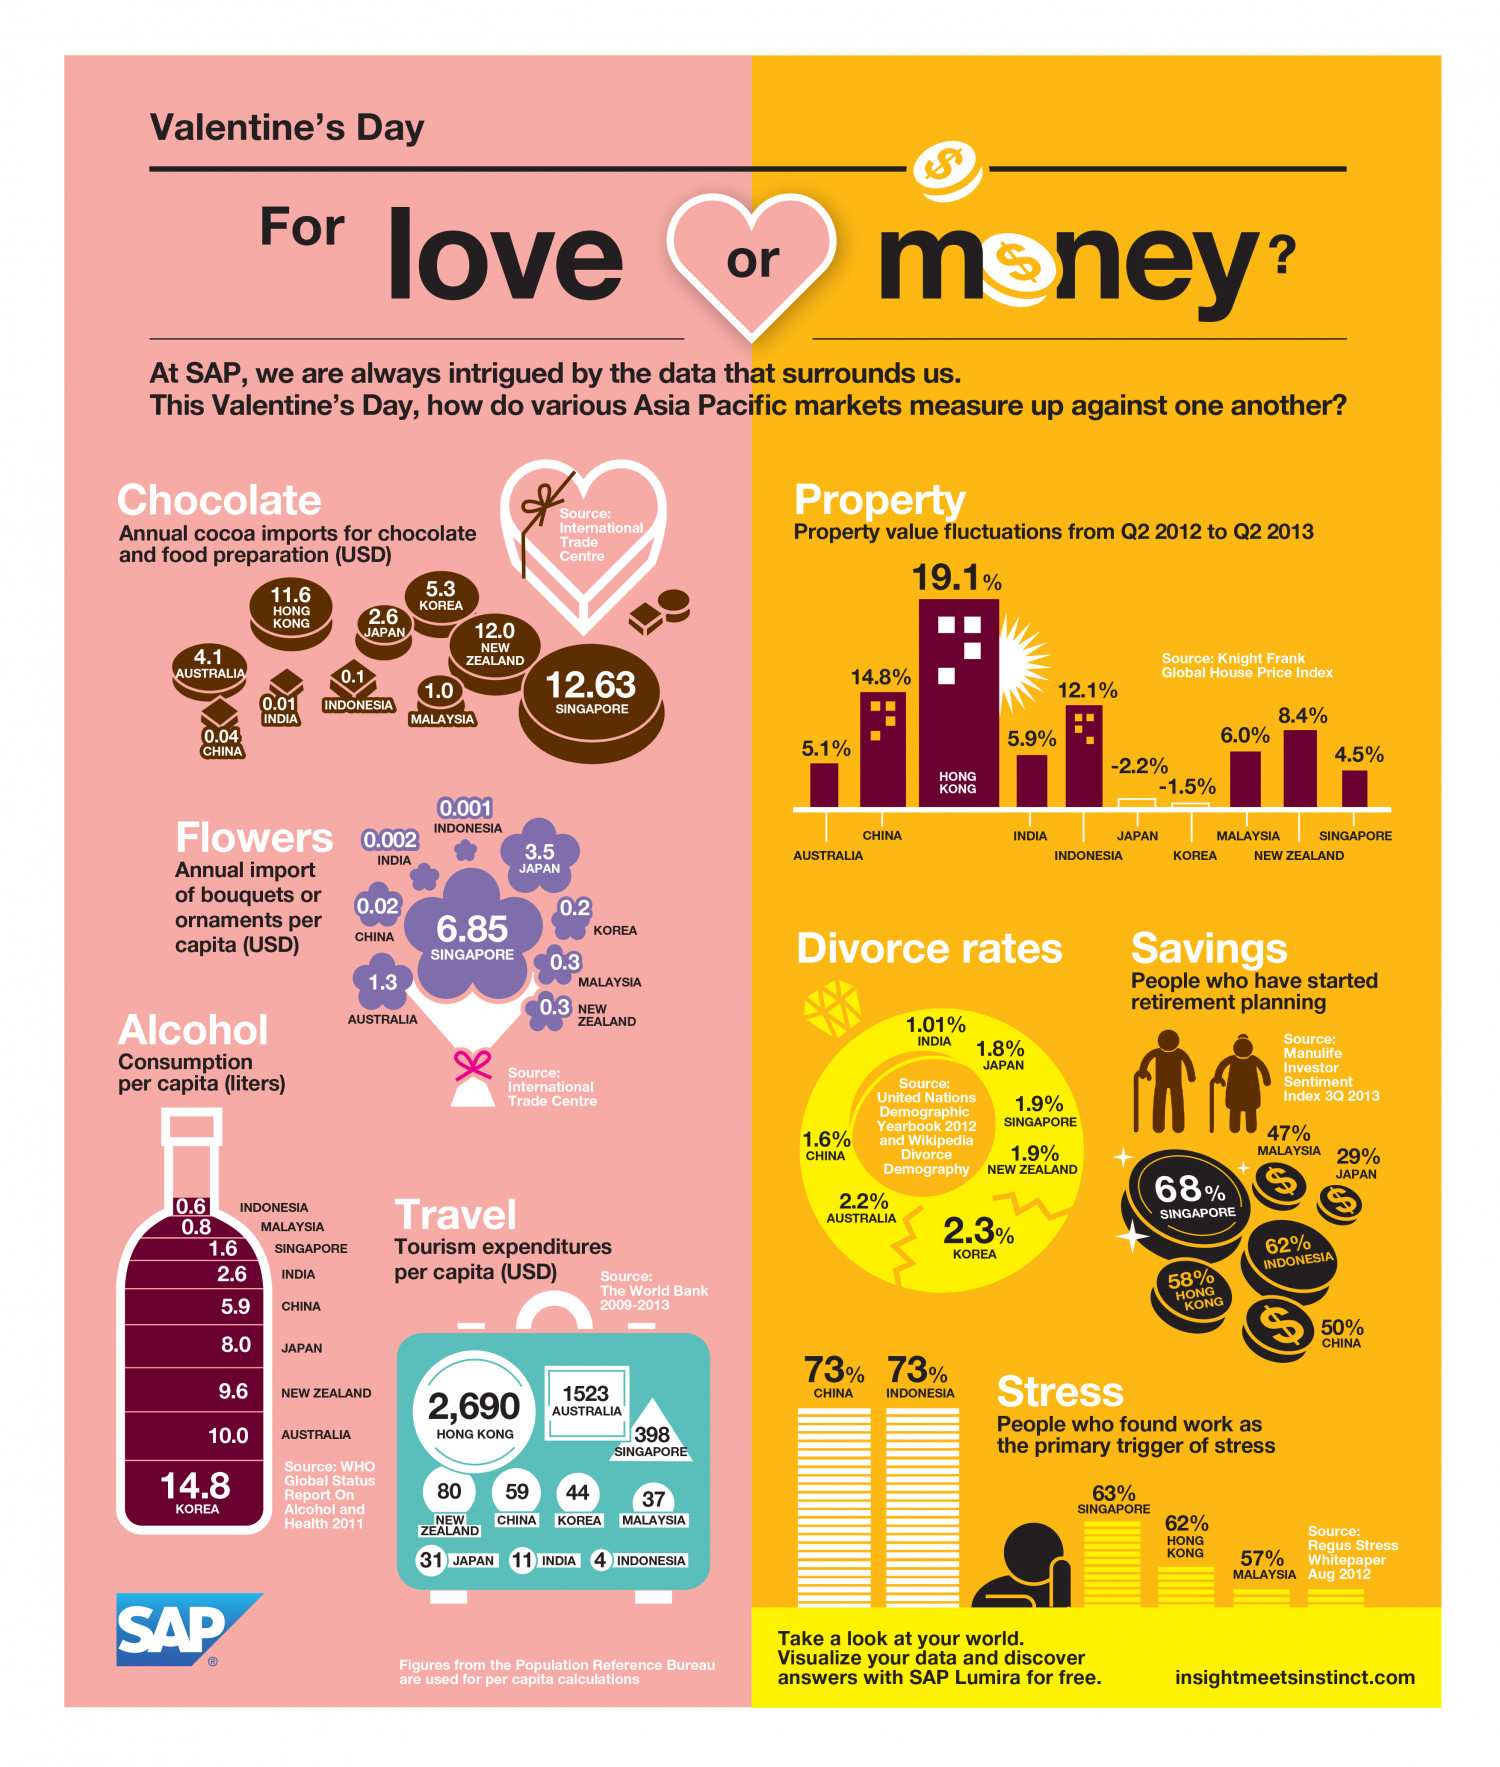 Valentine's Day: For love or money? Infographic